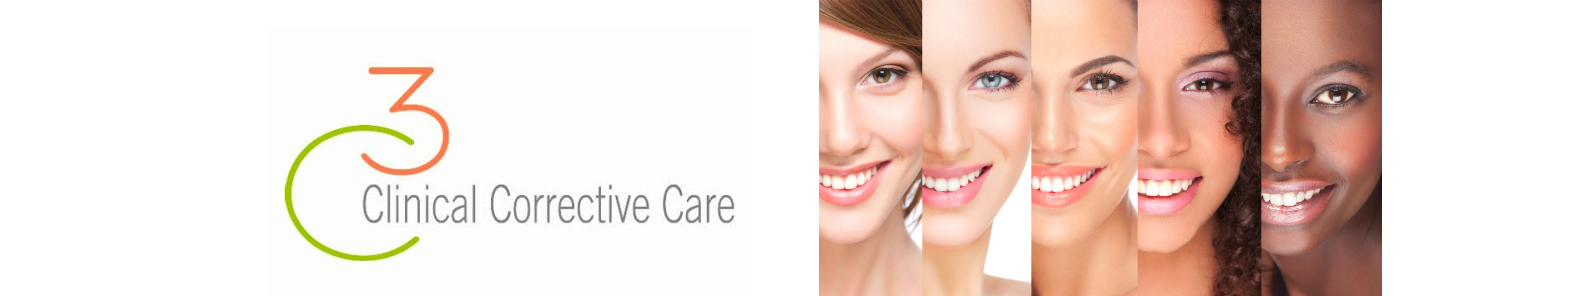 C3 Clinical Corrective Care